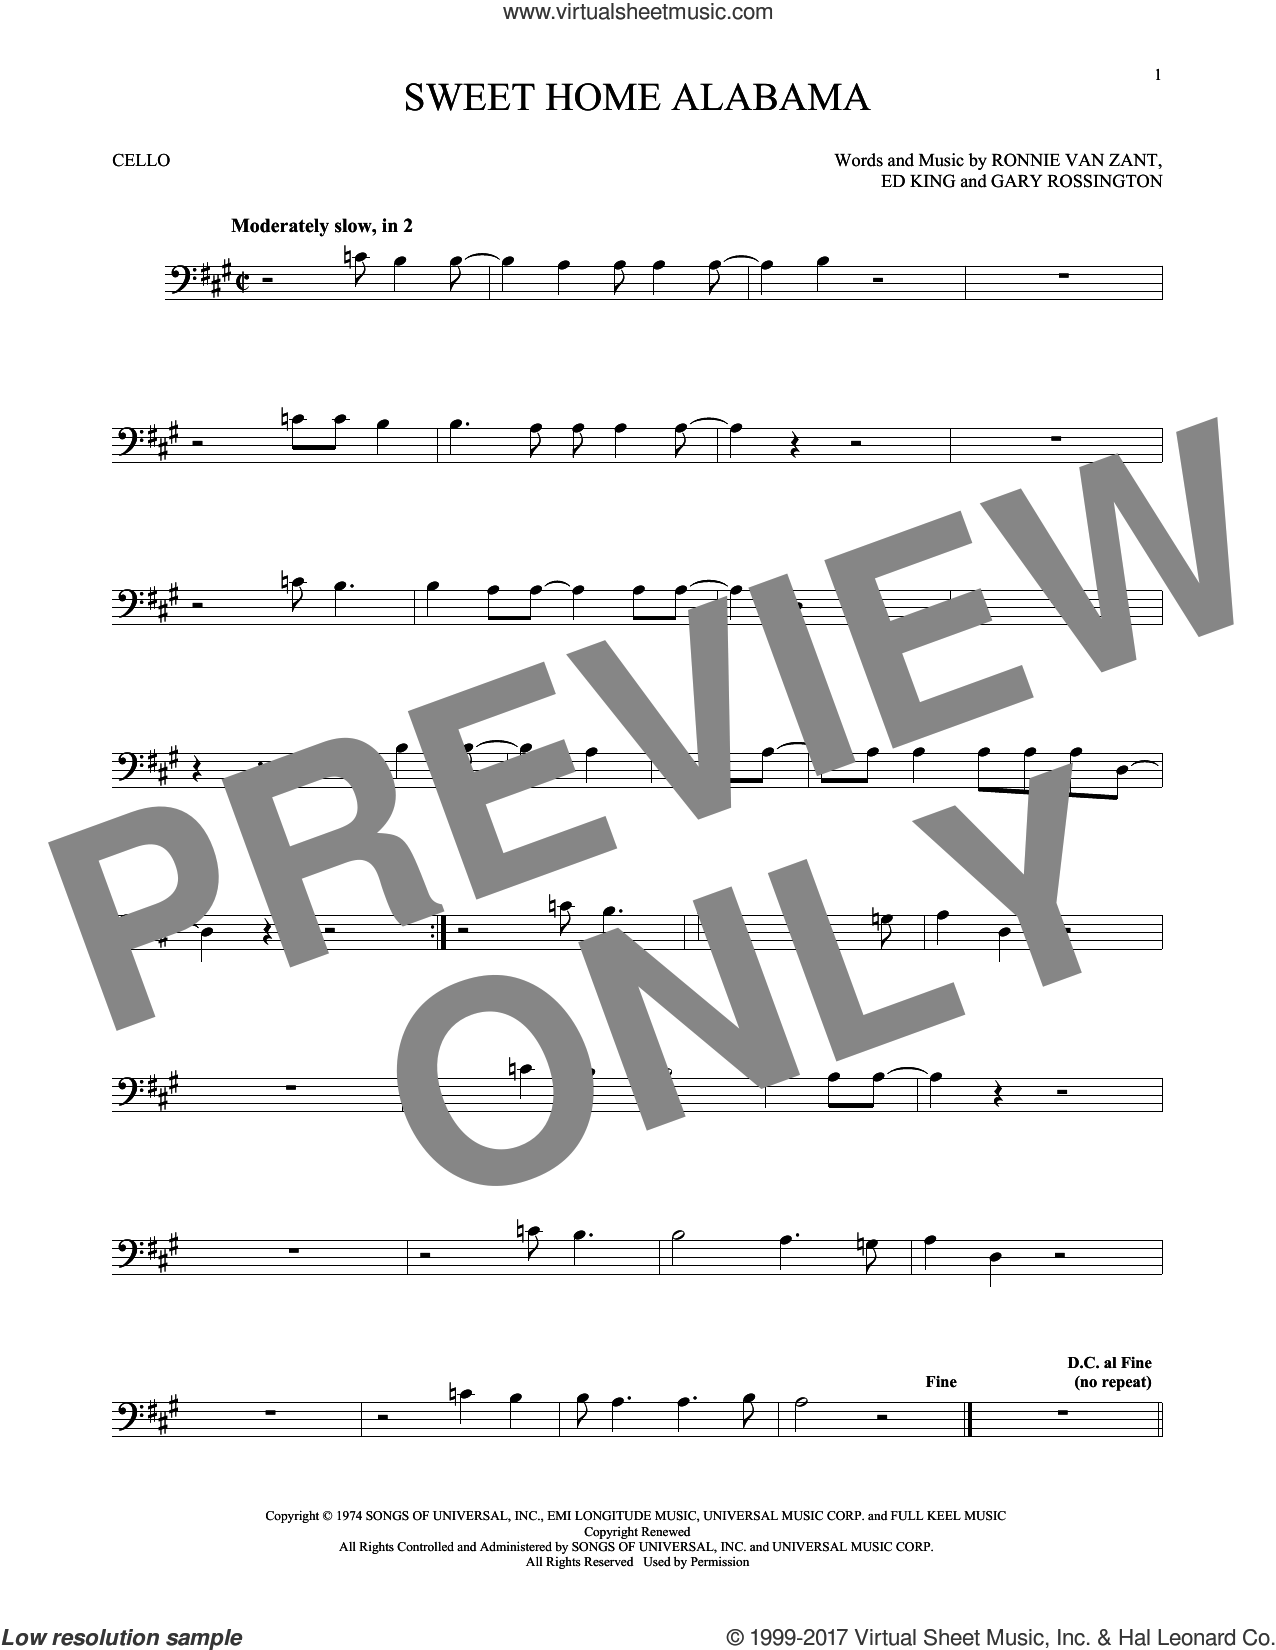 Sweet Home Alabama sheet music for cello solo by Lynyrd Skynyrd, Edward King, Gary Rossington and Ronnie Van Zant, intermediate skill level